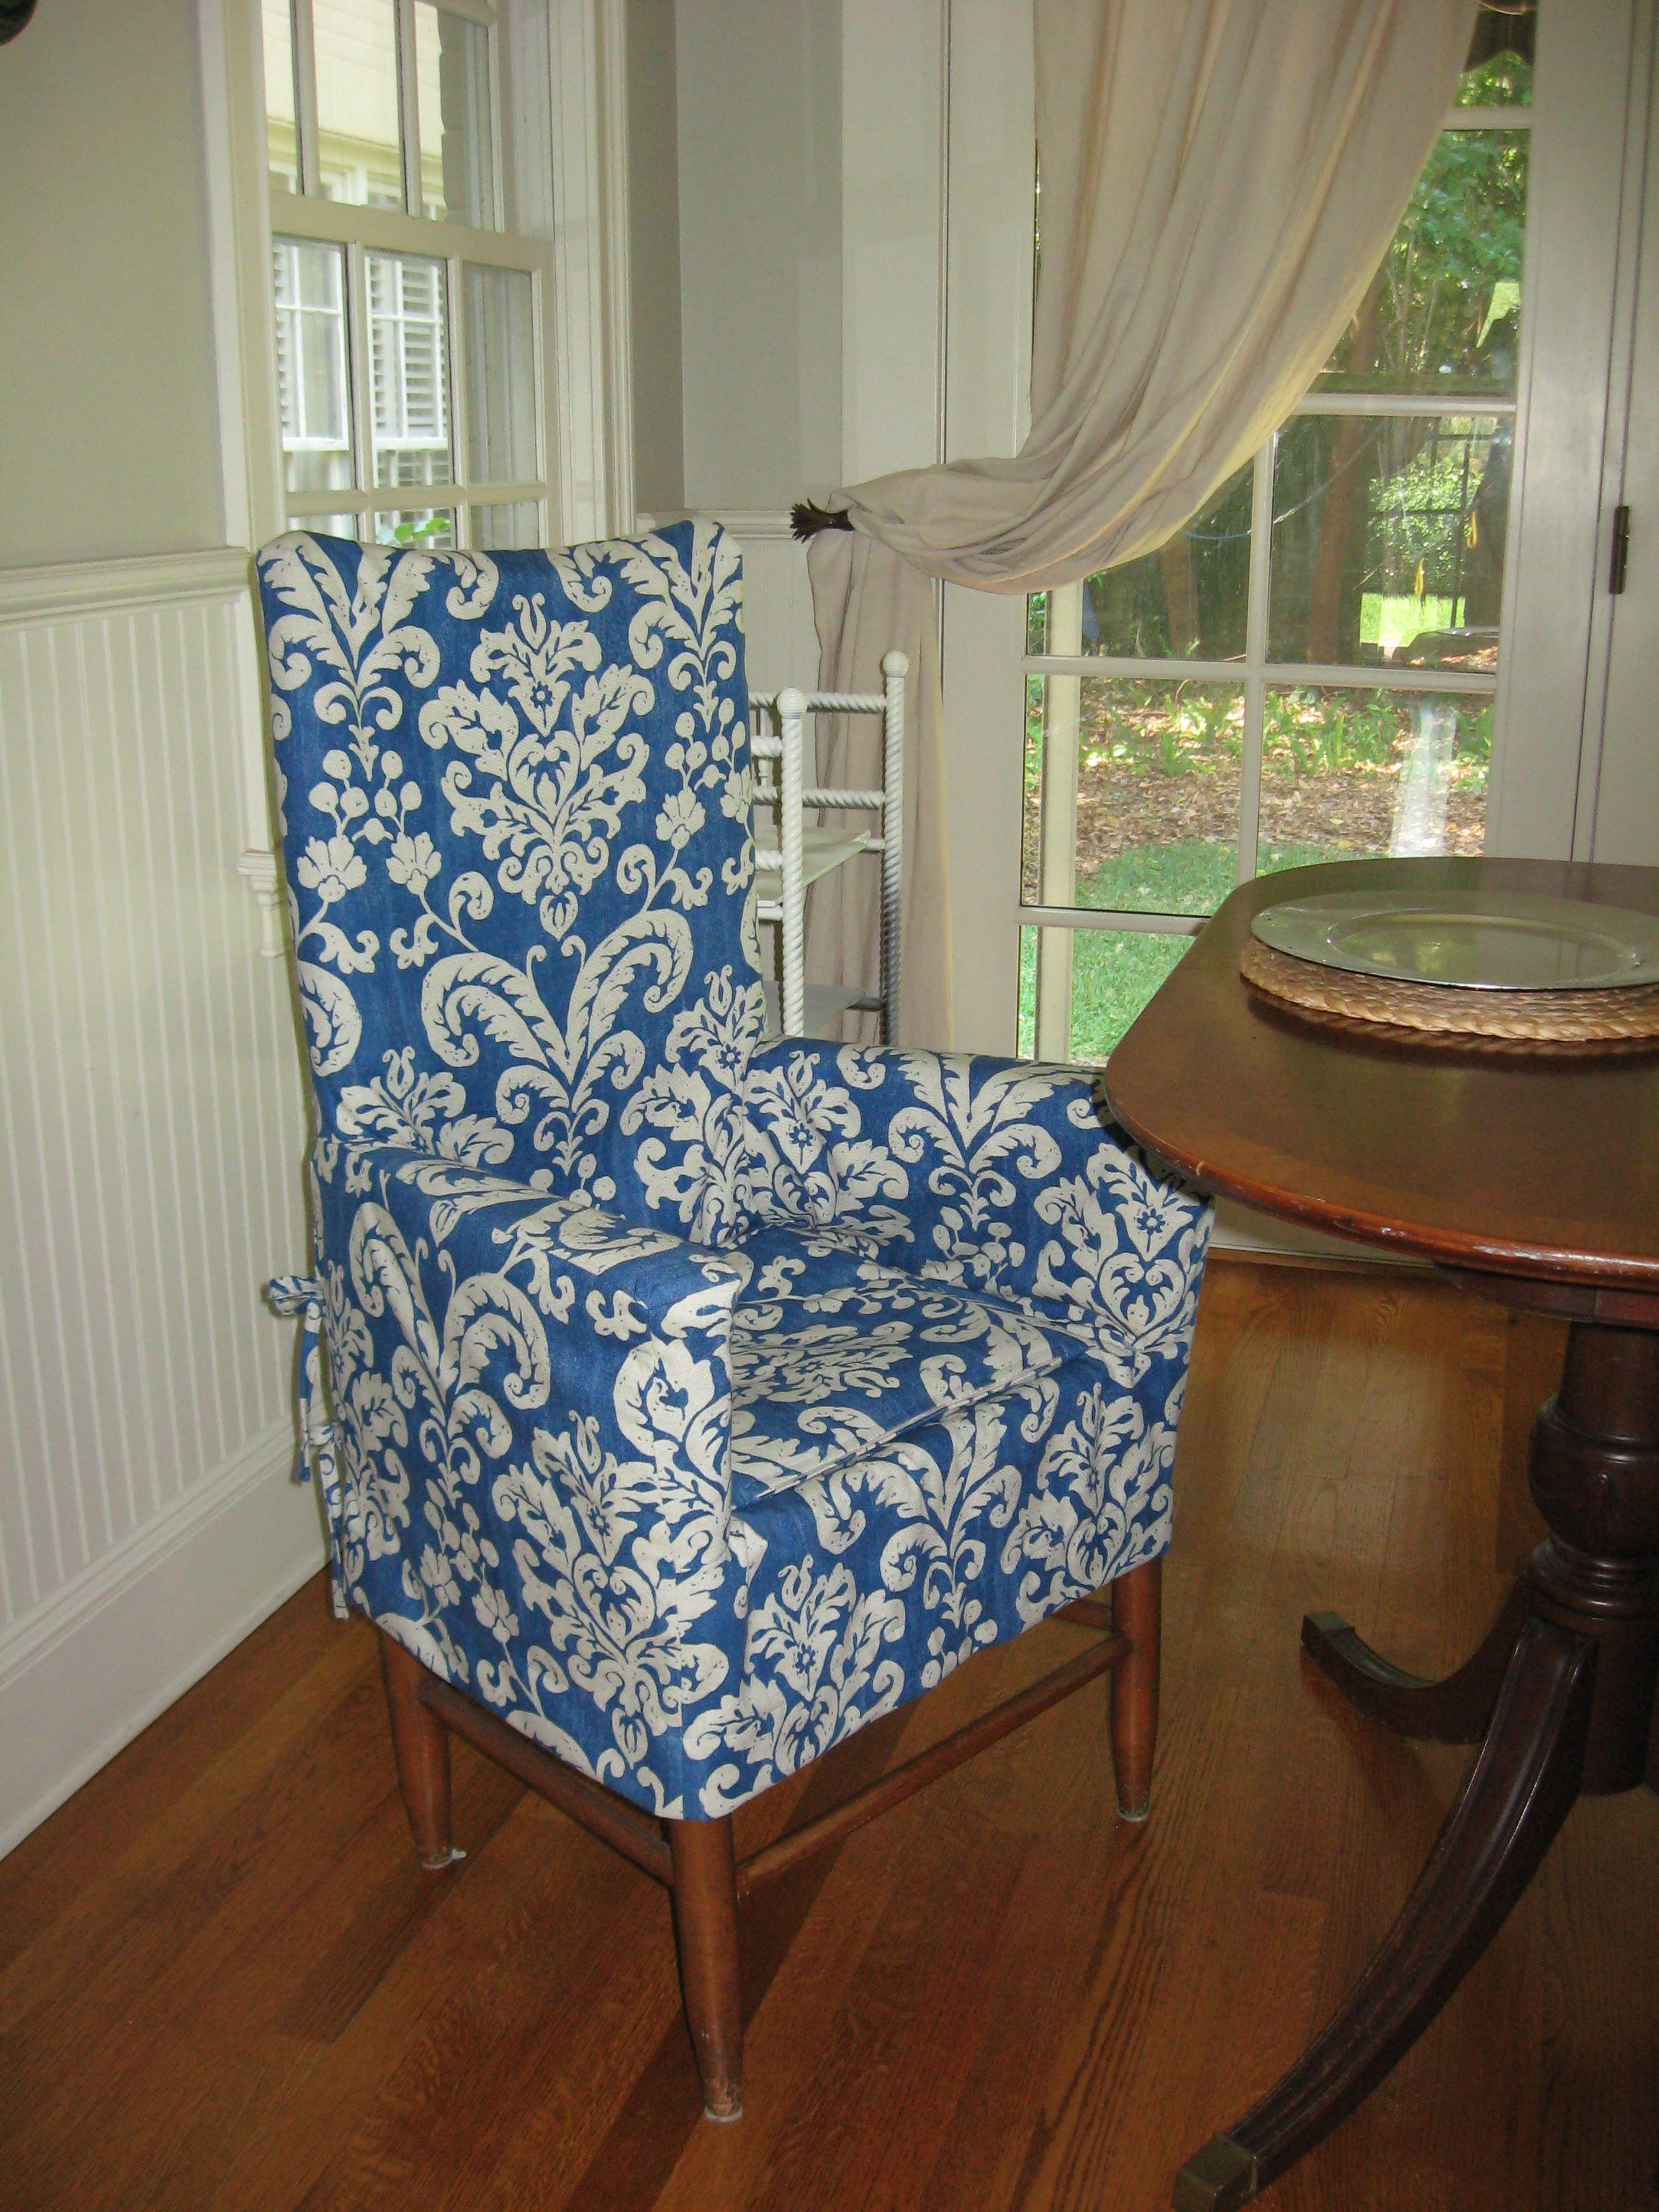 Slipcover transforms my client's wooden ladderback chair